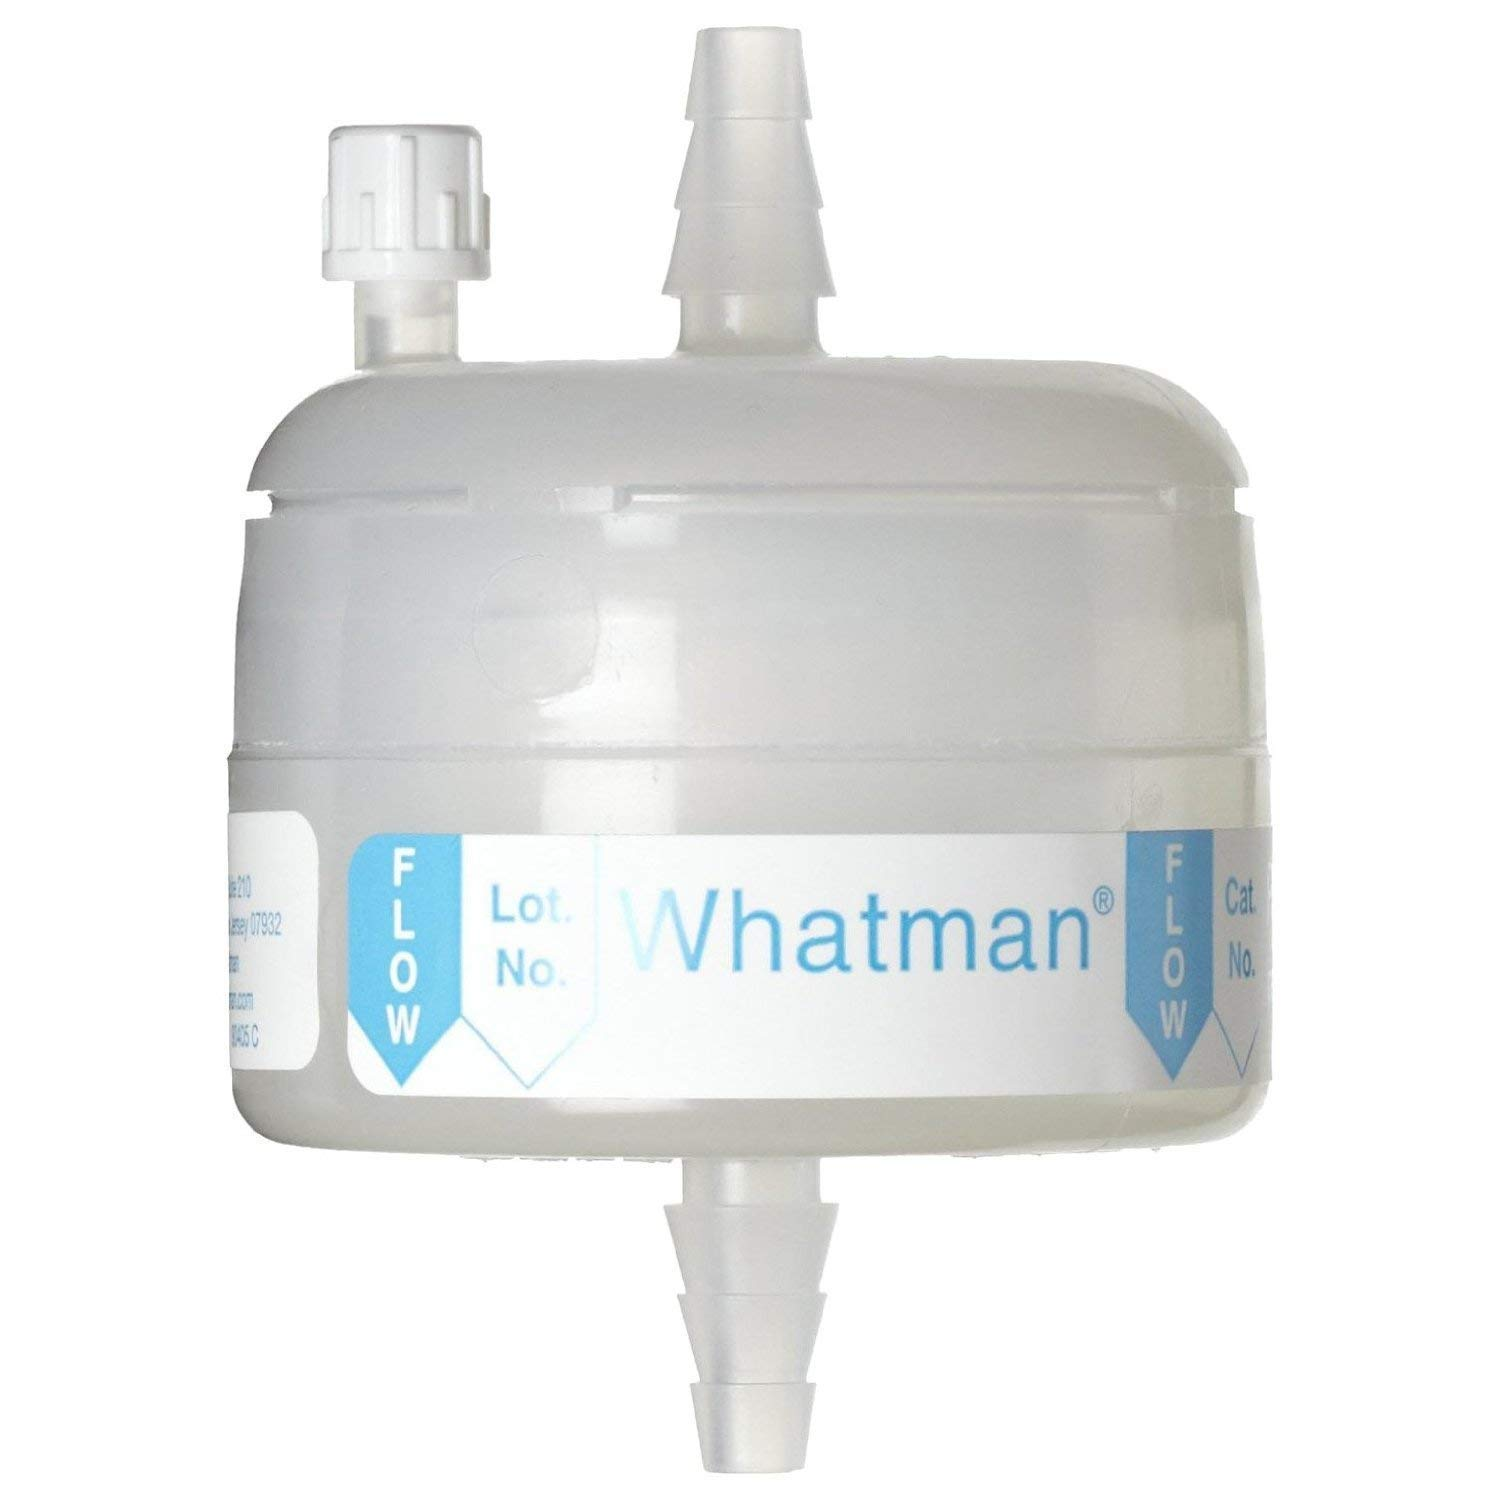 10.0 Micron 60 psi Maximum Pressure Whatman 6703-3611 Polycap HD 36 Polypropylene Capsule Filter with SB Inlet and Outlet